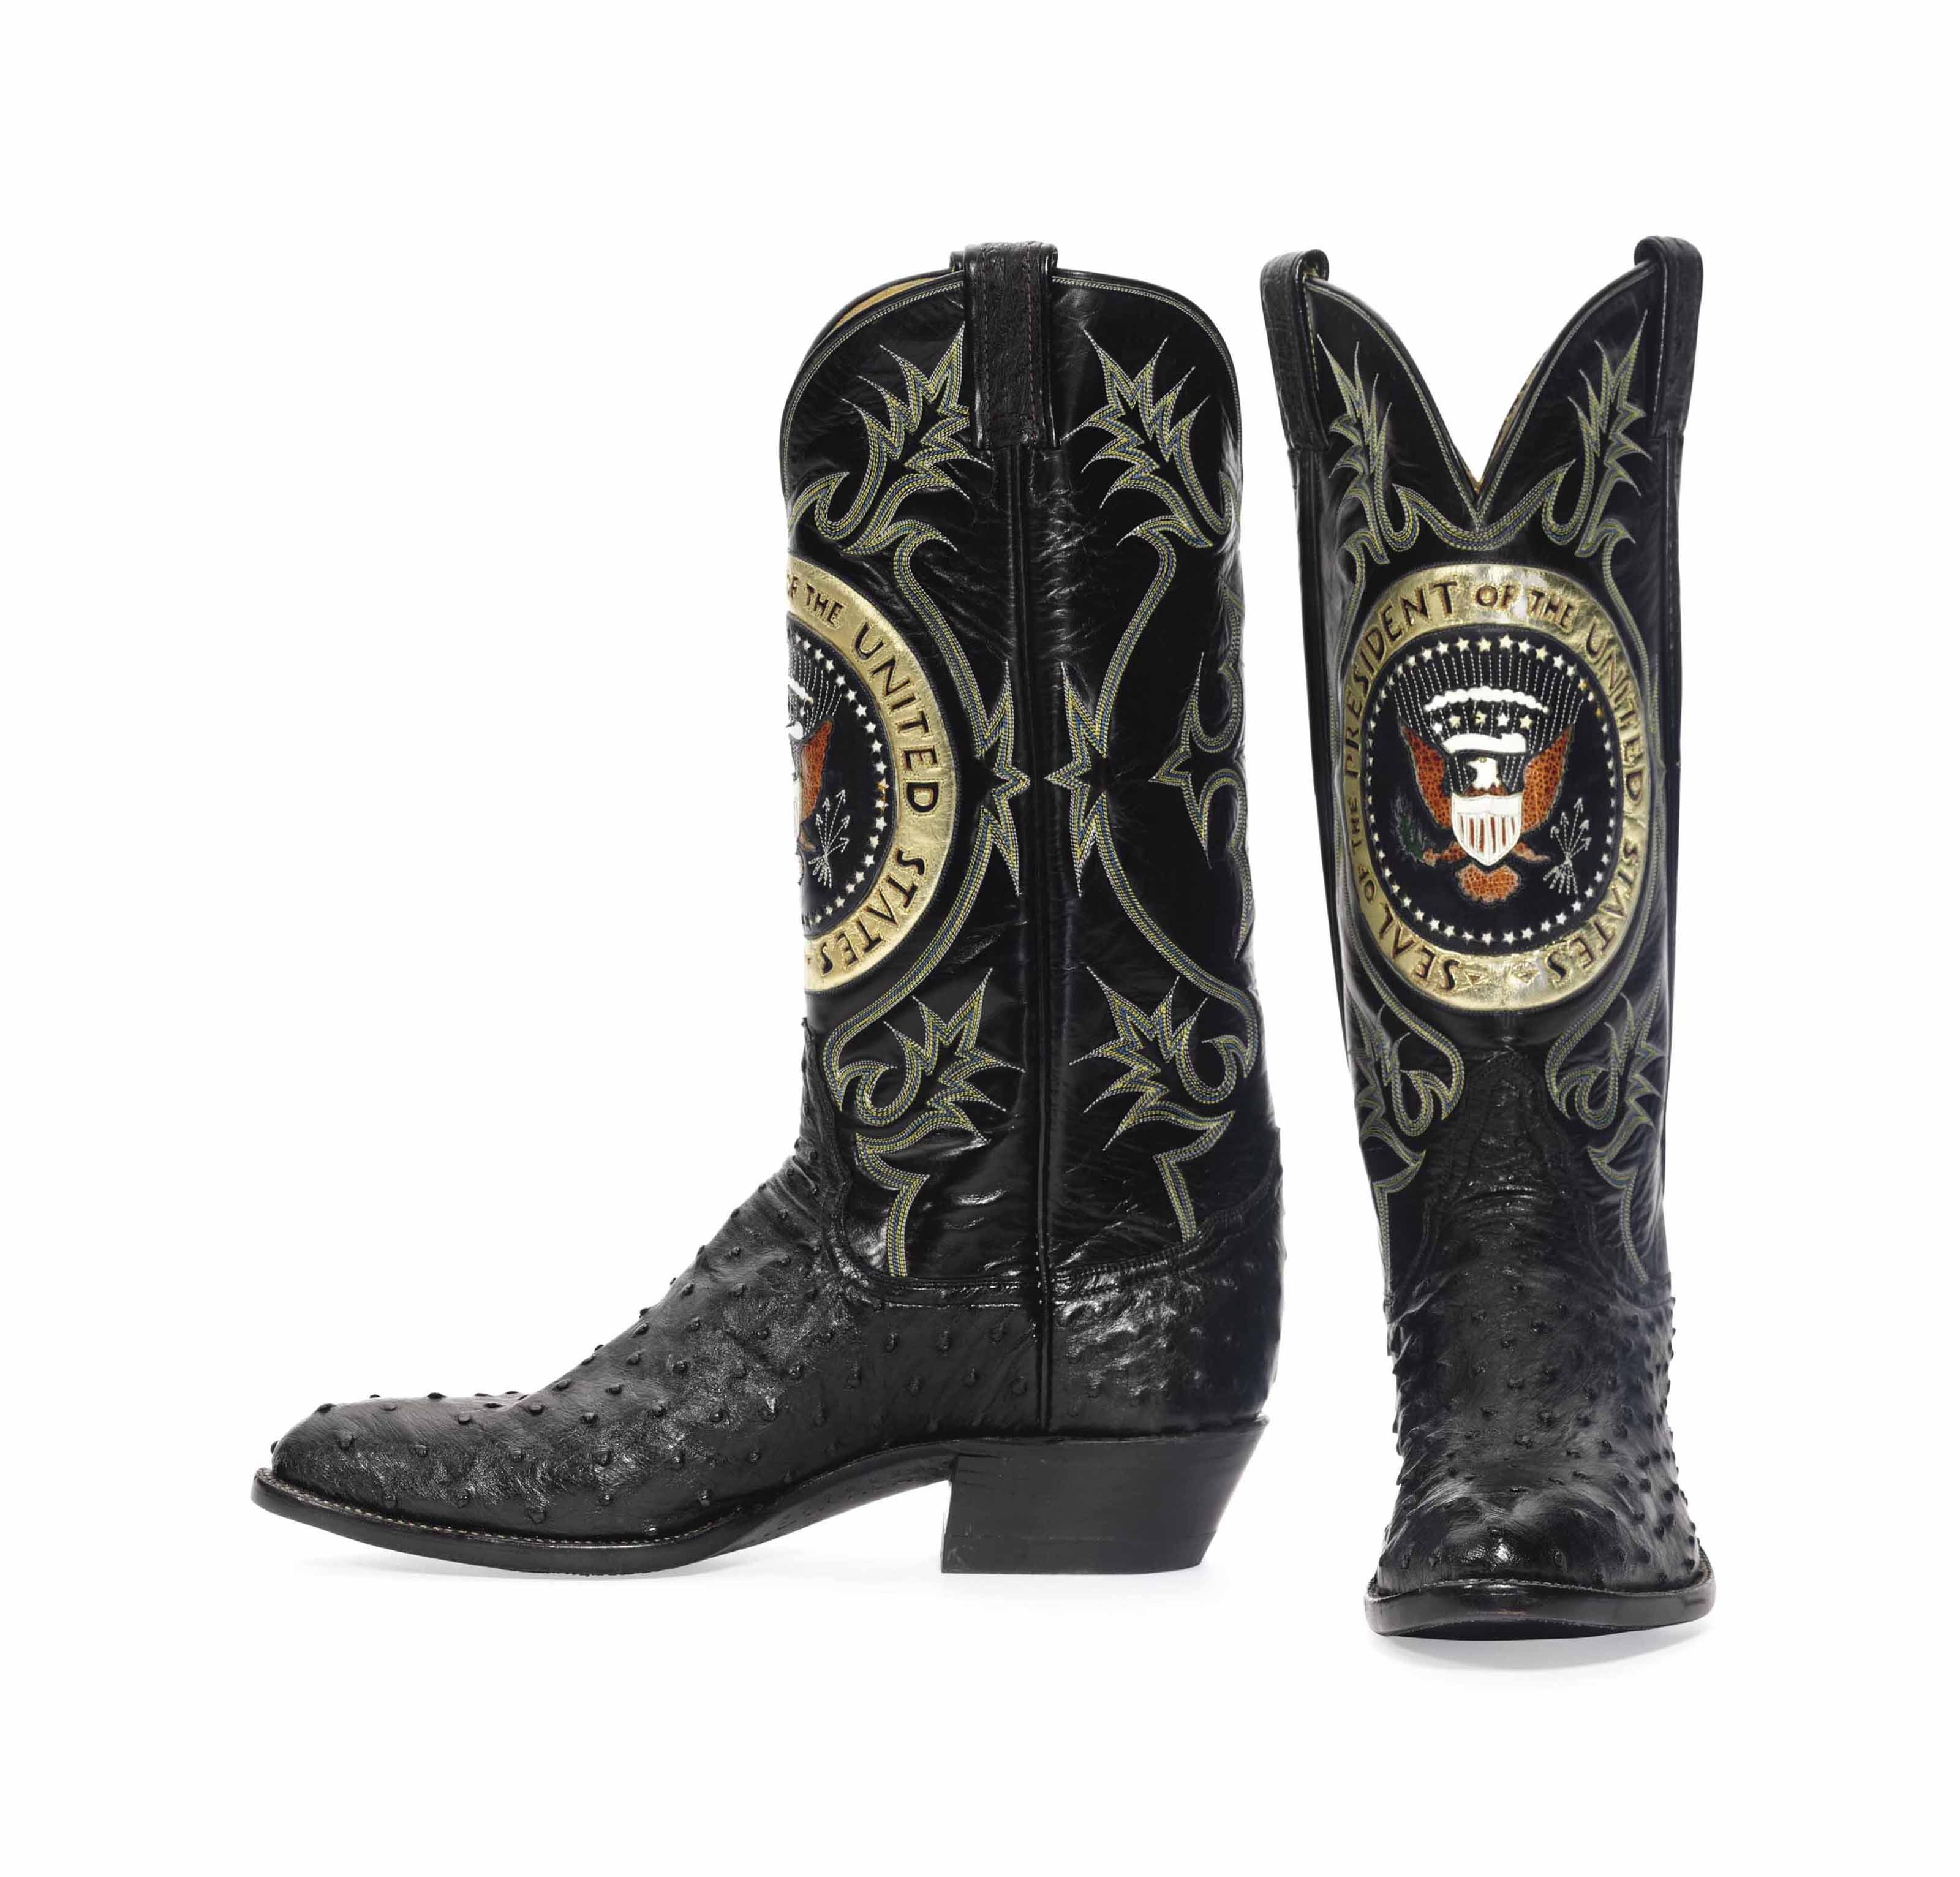 PRESIDENT RONALD REAGAN A PAIR OF AMERICAN BLACK QUILL OSTRICH, COWHIDE AND FROG SKIN COWBOY BOOTS